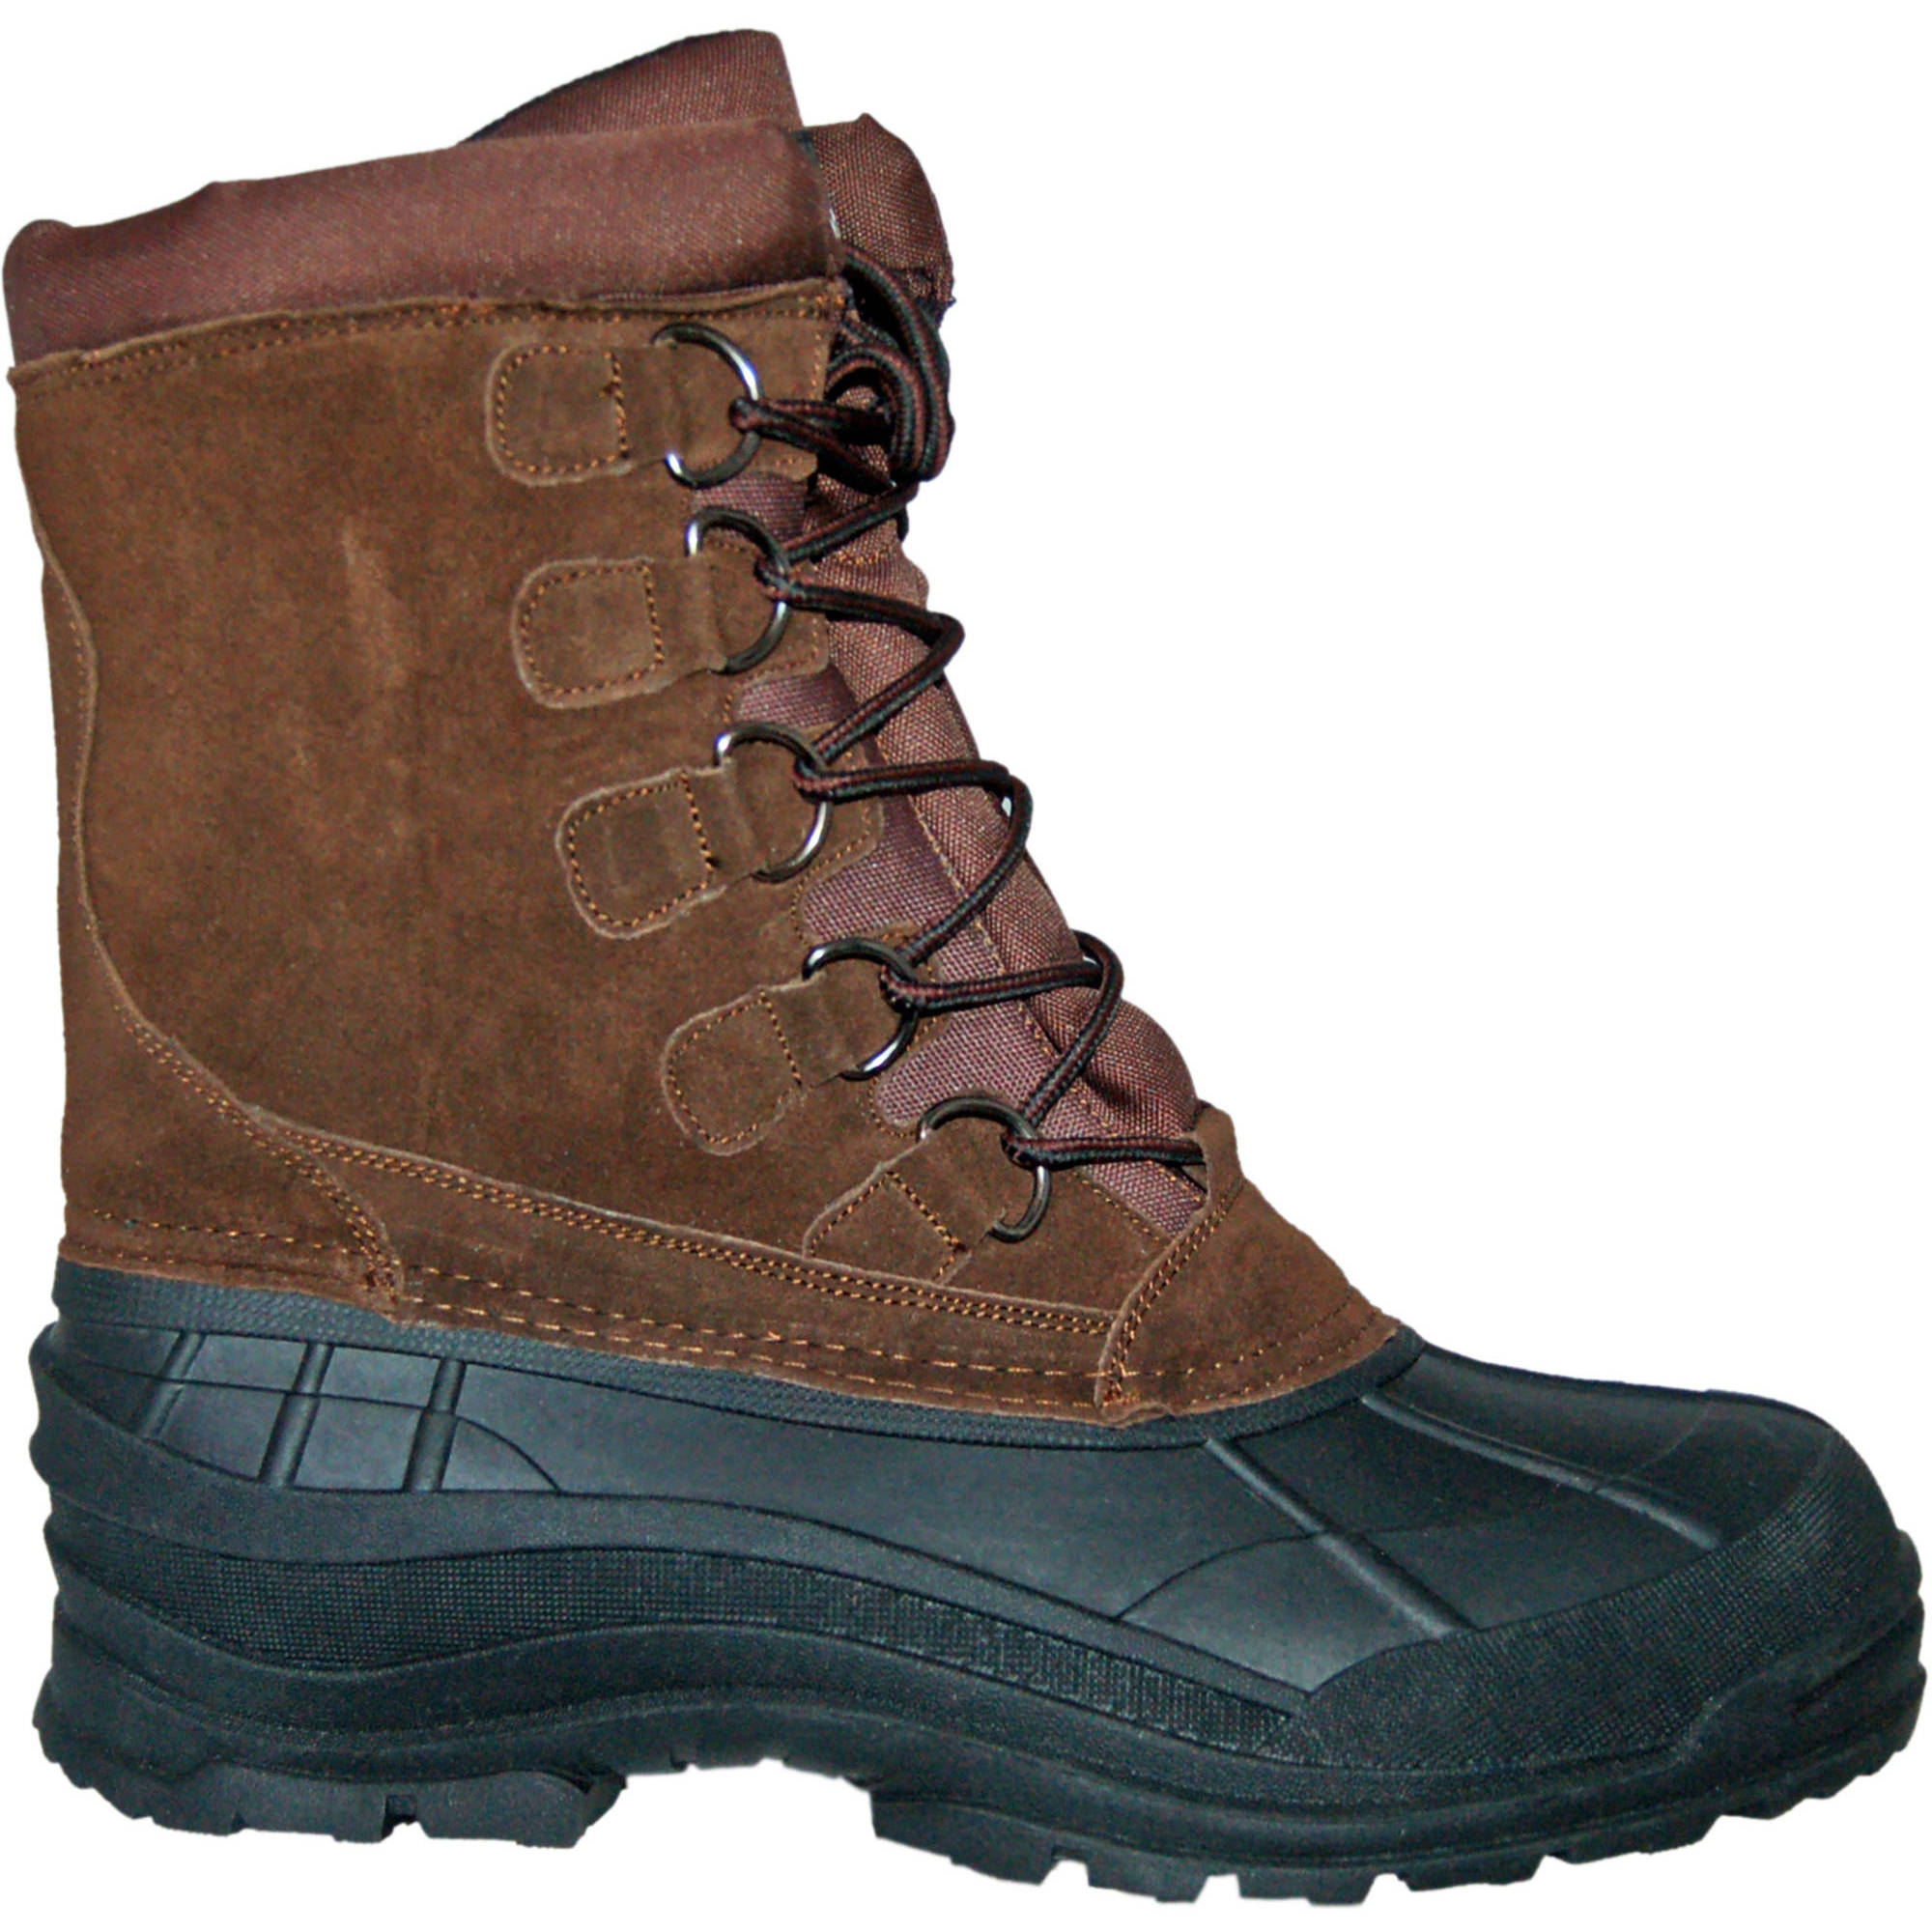 Cold Front Men's Trekker Boot